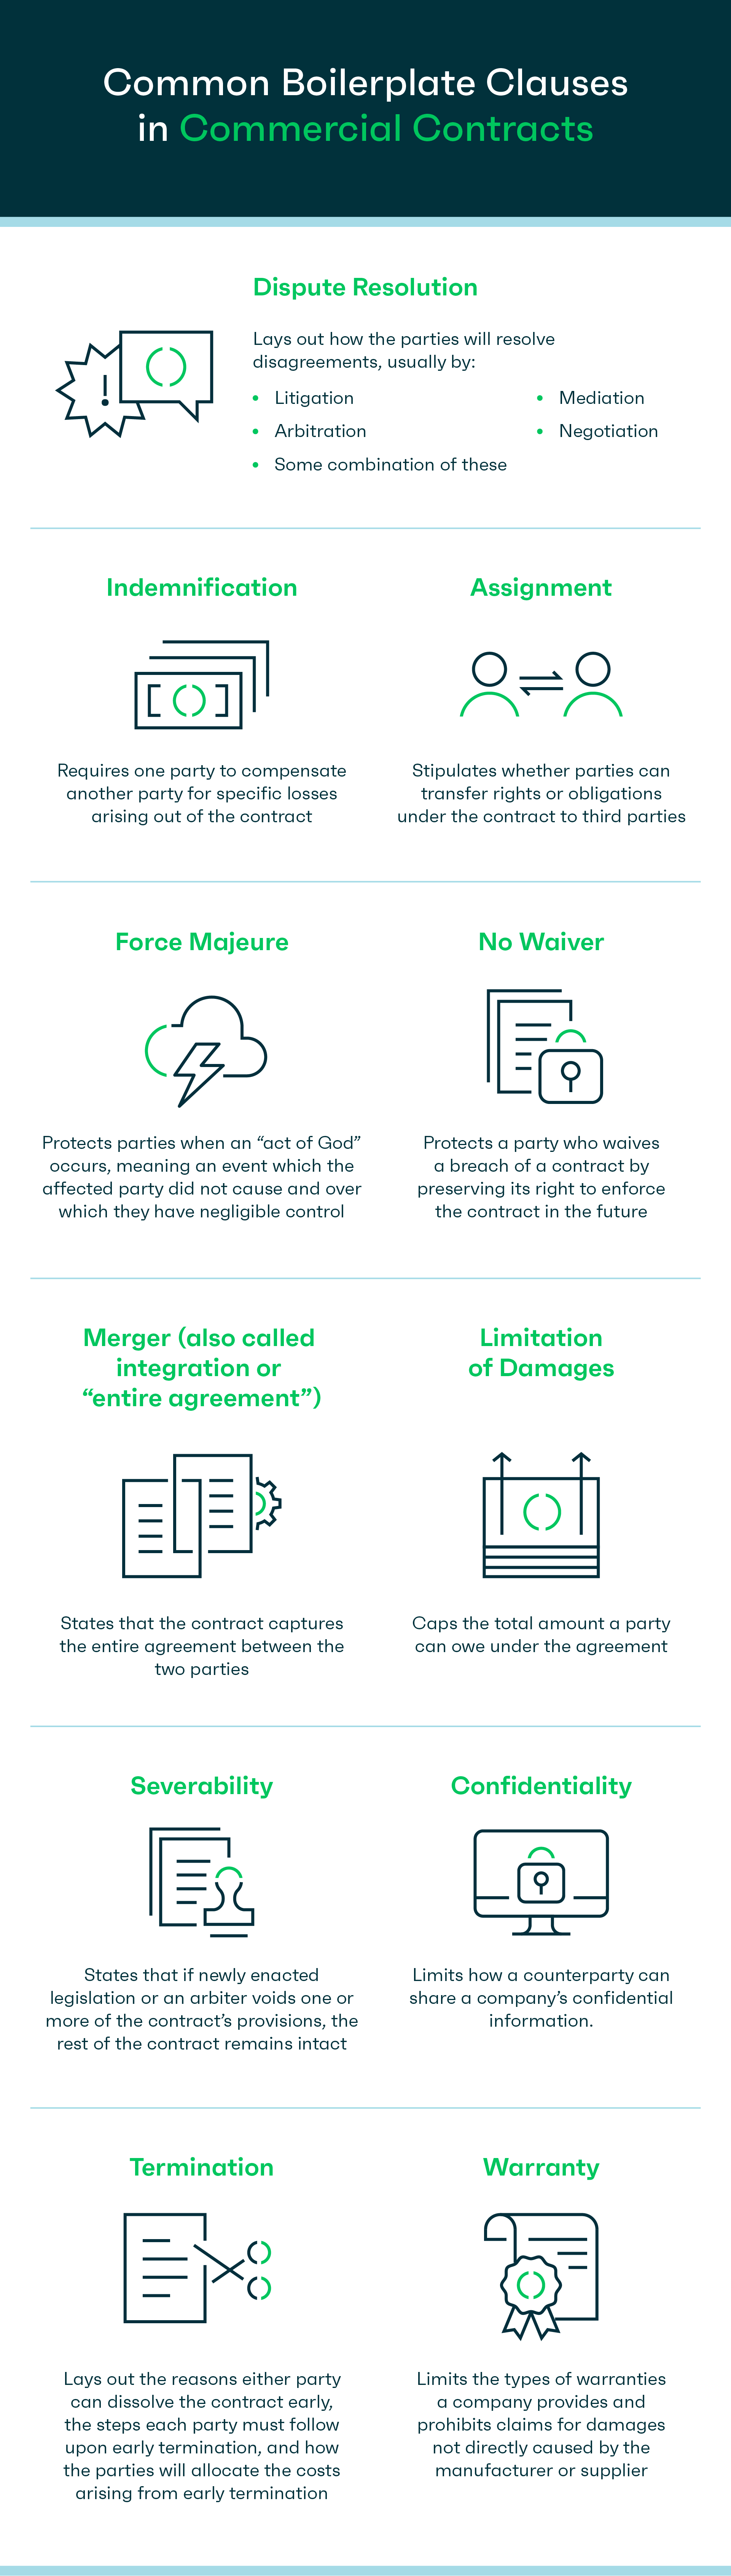 Common boilerplate clauses in commercial contracts - infographic